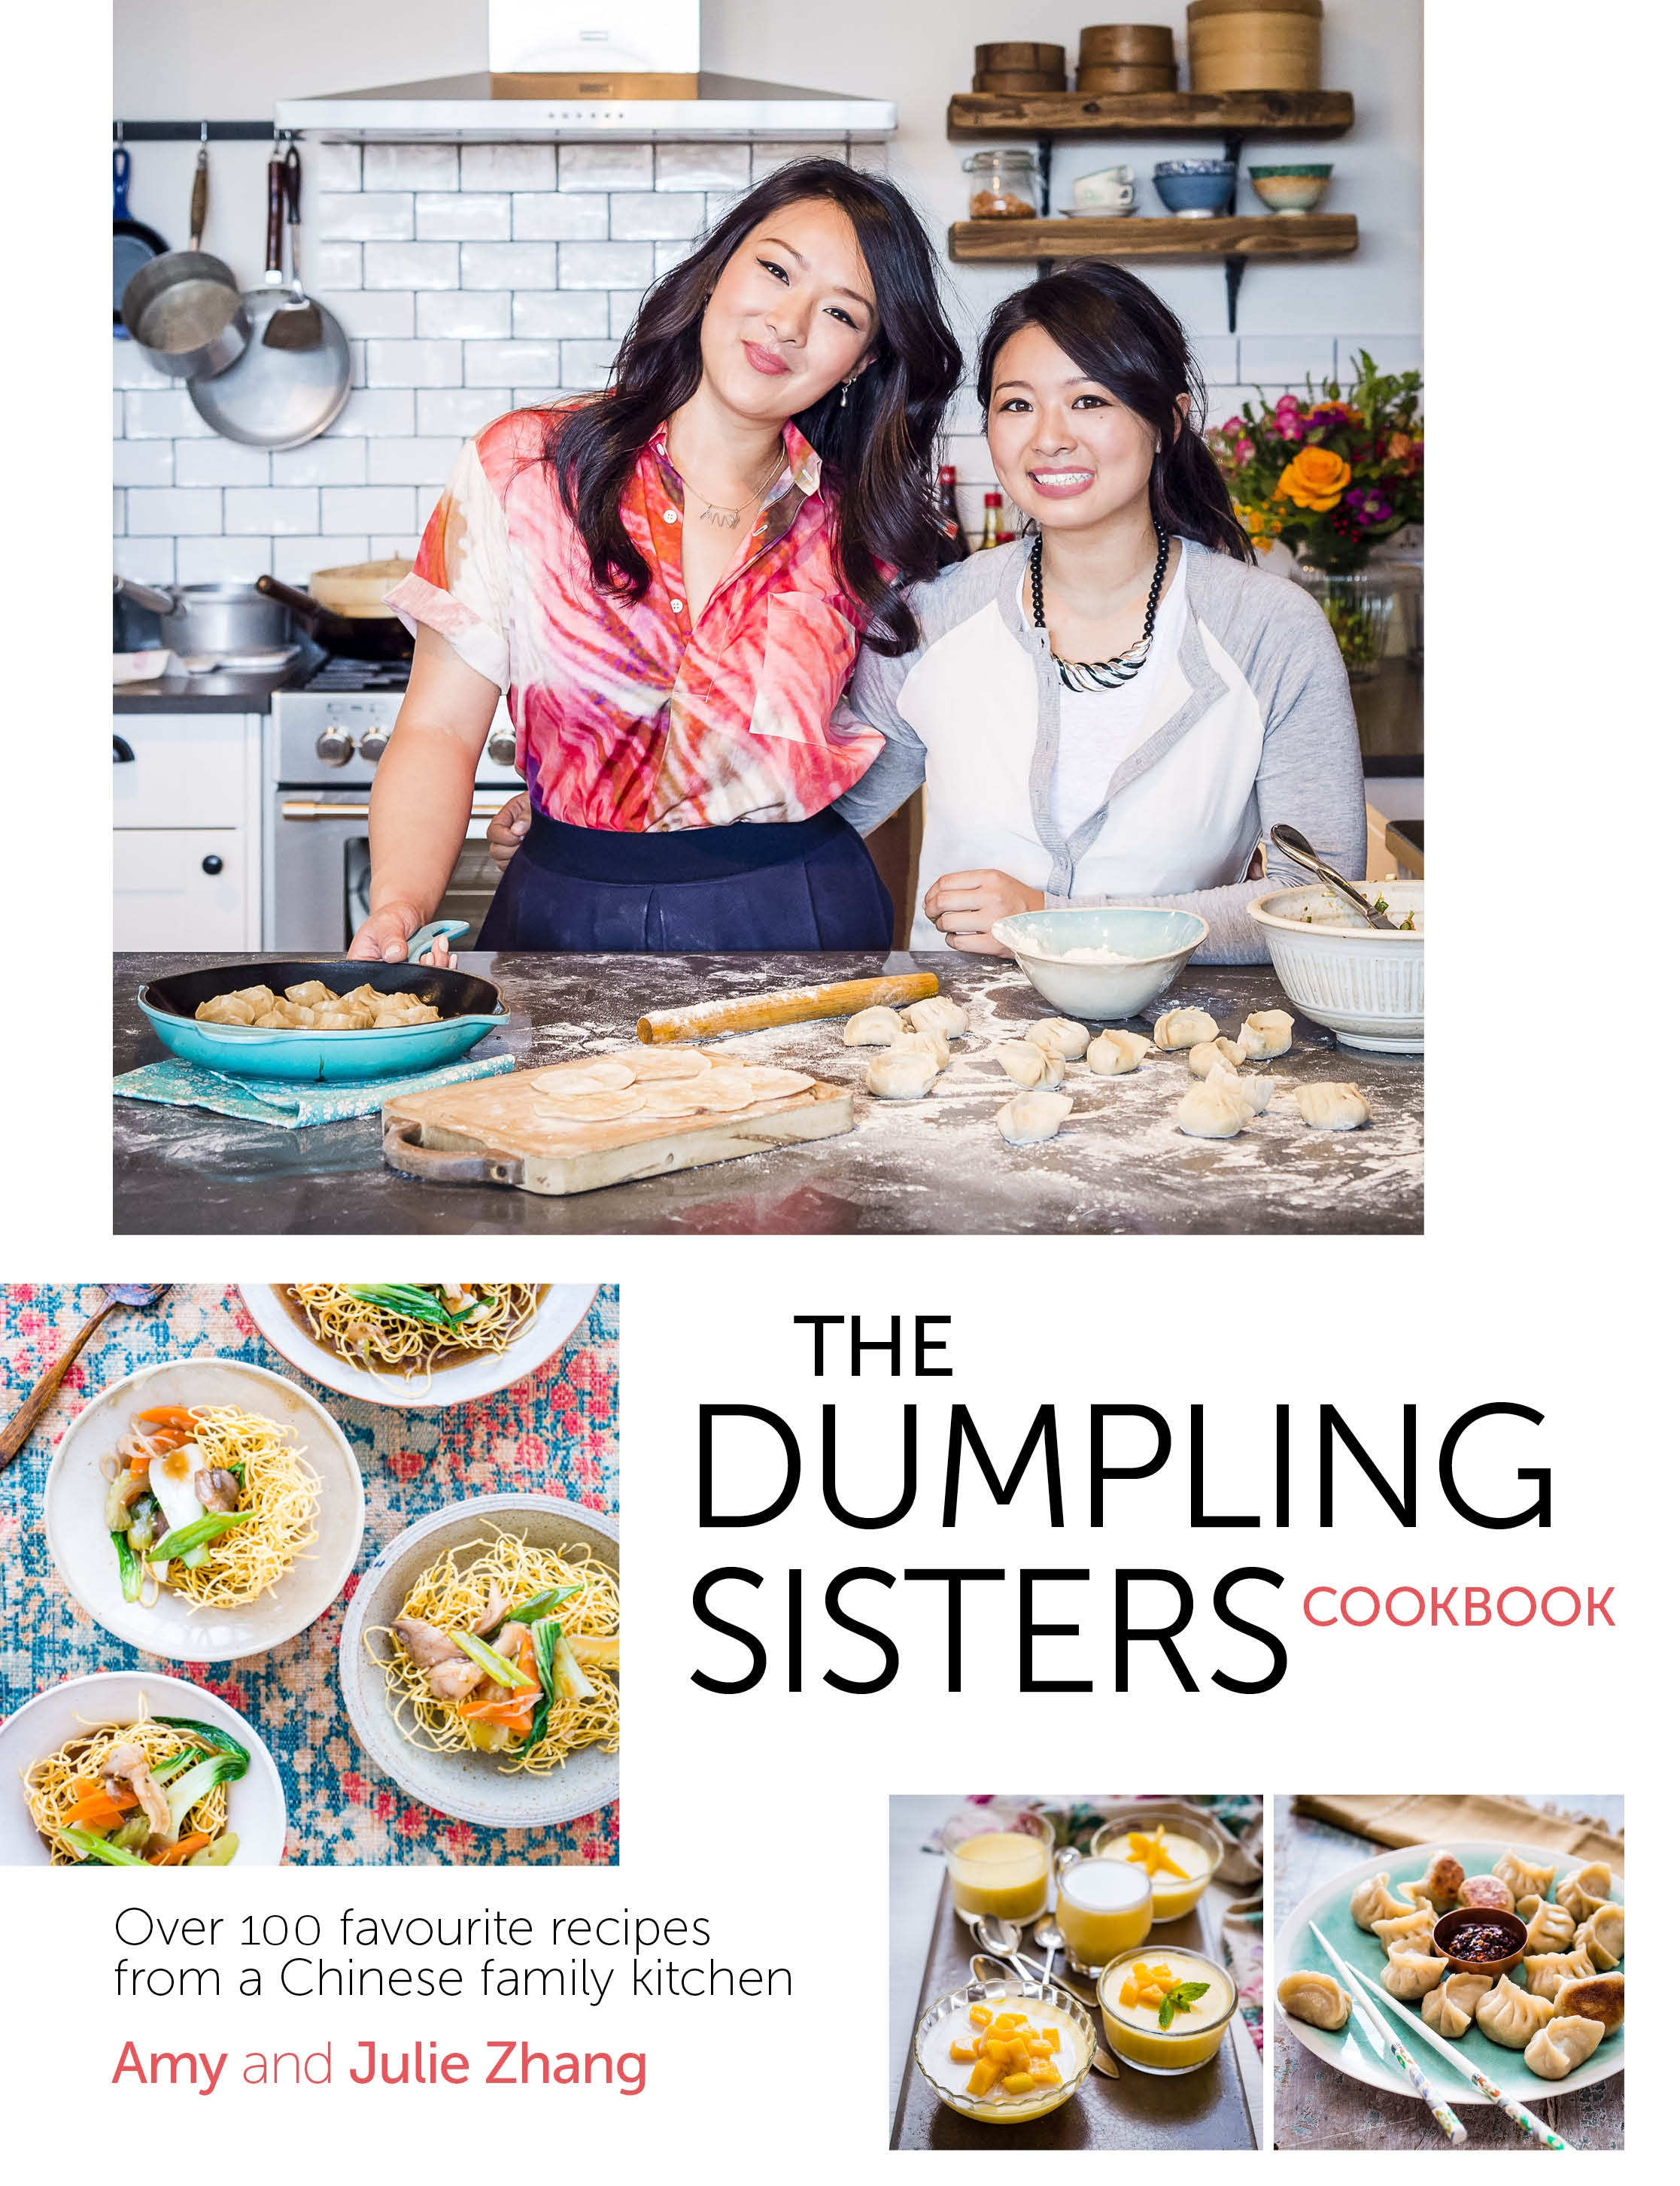 The Dumpling Sisters Cookbook by Amy Zhang, Julie Zhang, ISBN: 9780297609063